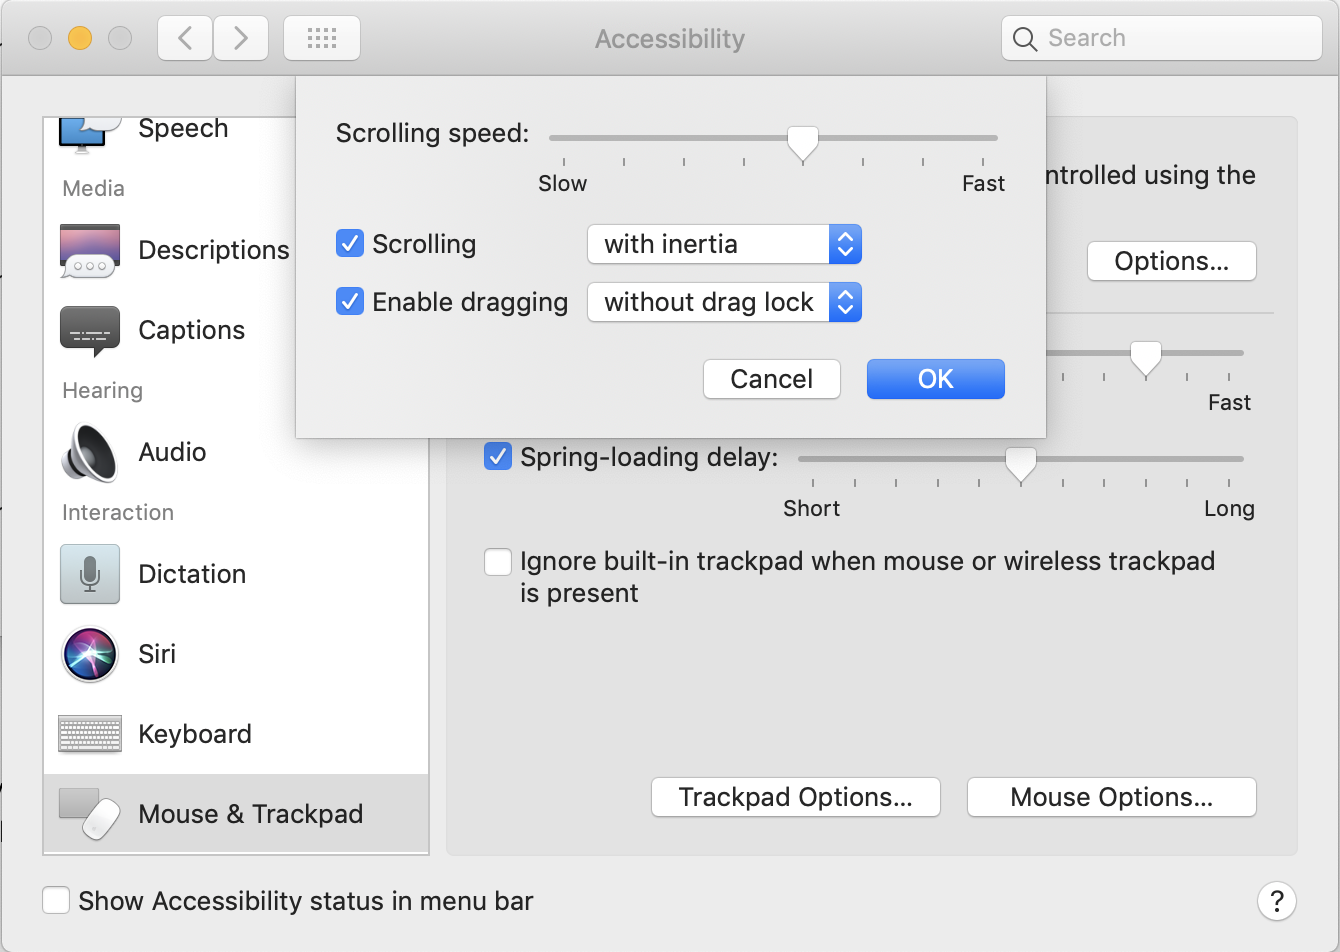 Configure Trackpad: Enable Dragging